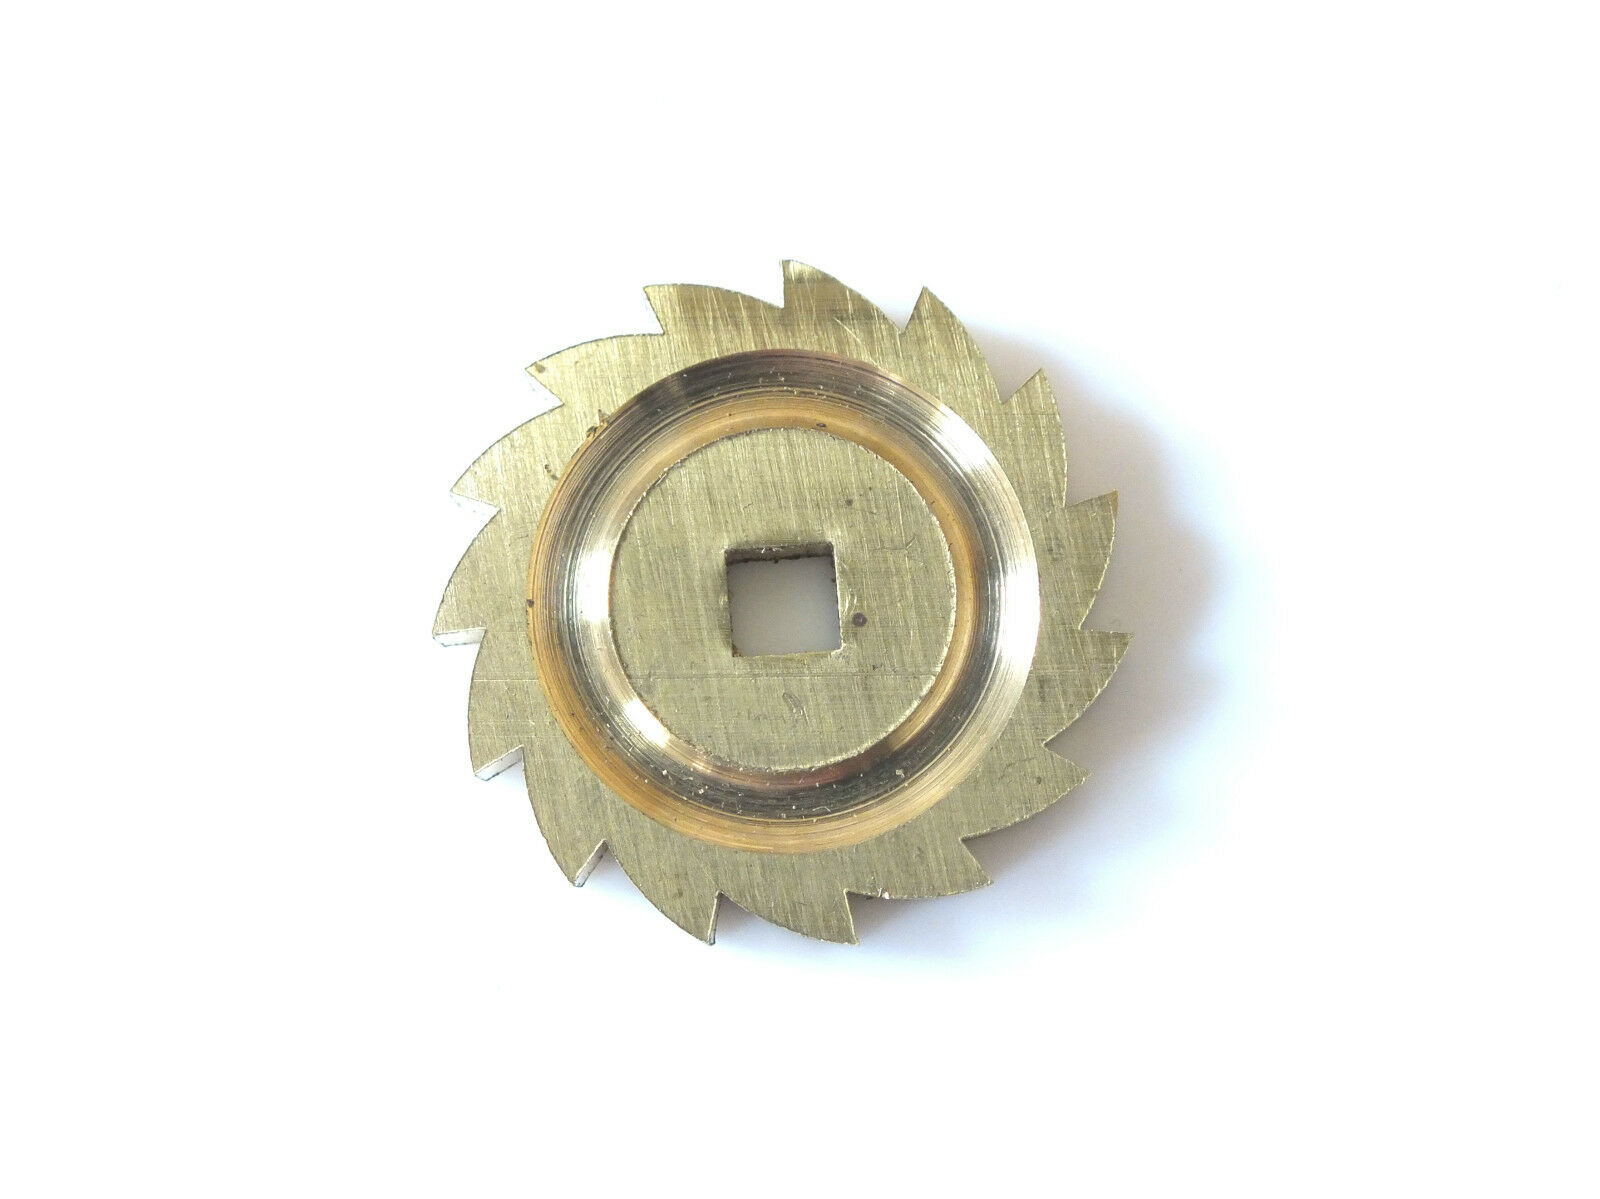 New Fusee Clock Ratchet Click Gear Wheel For Spares